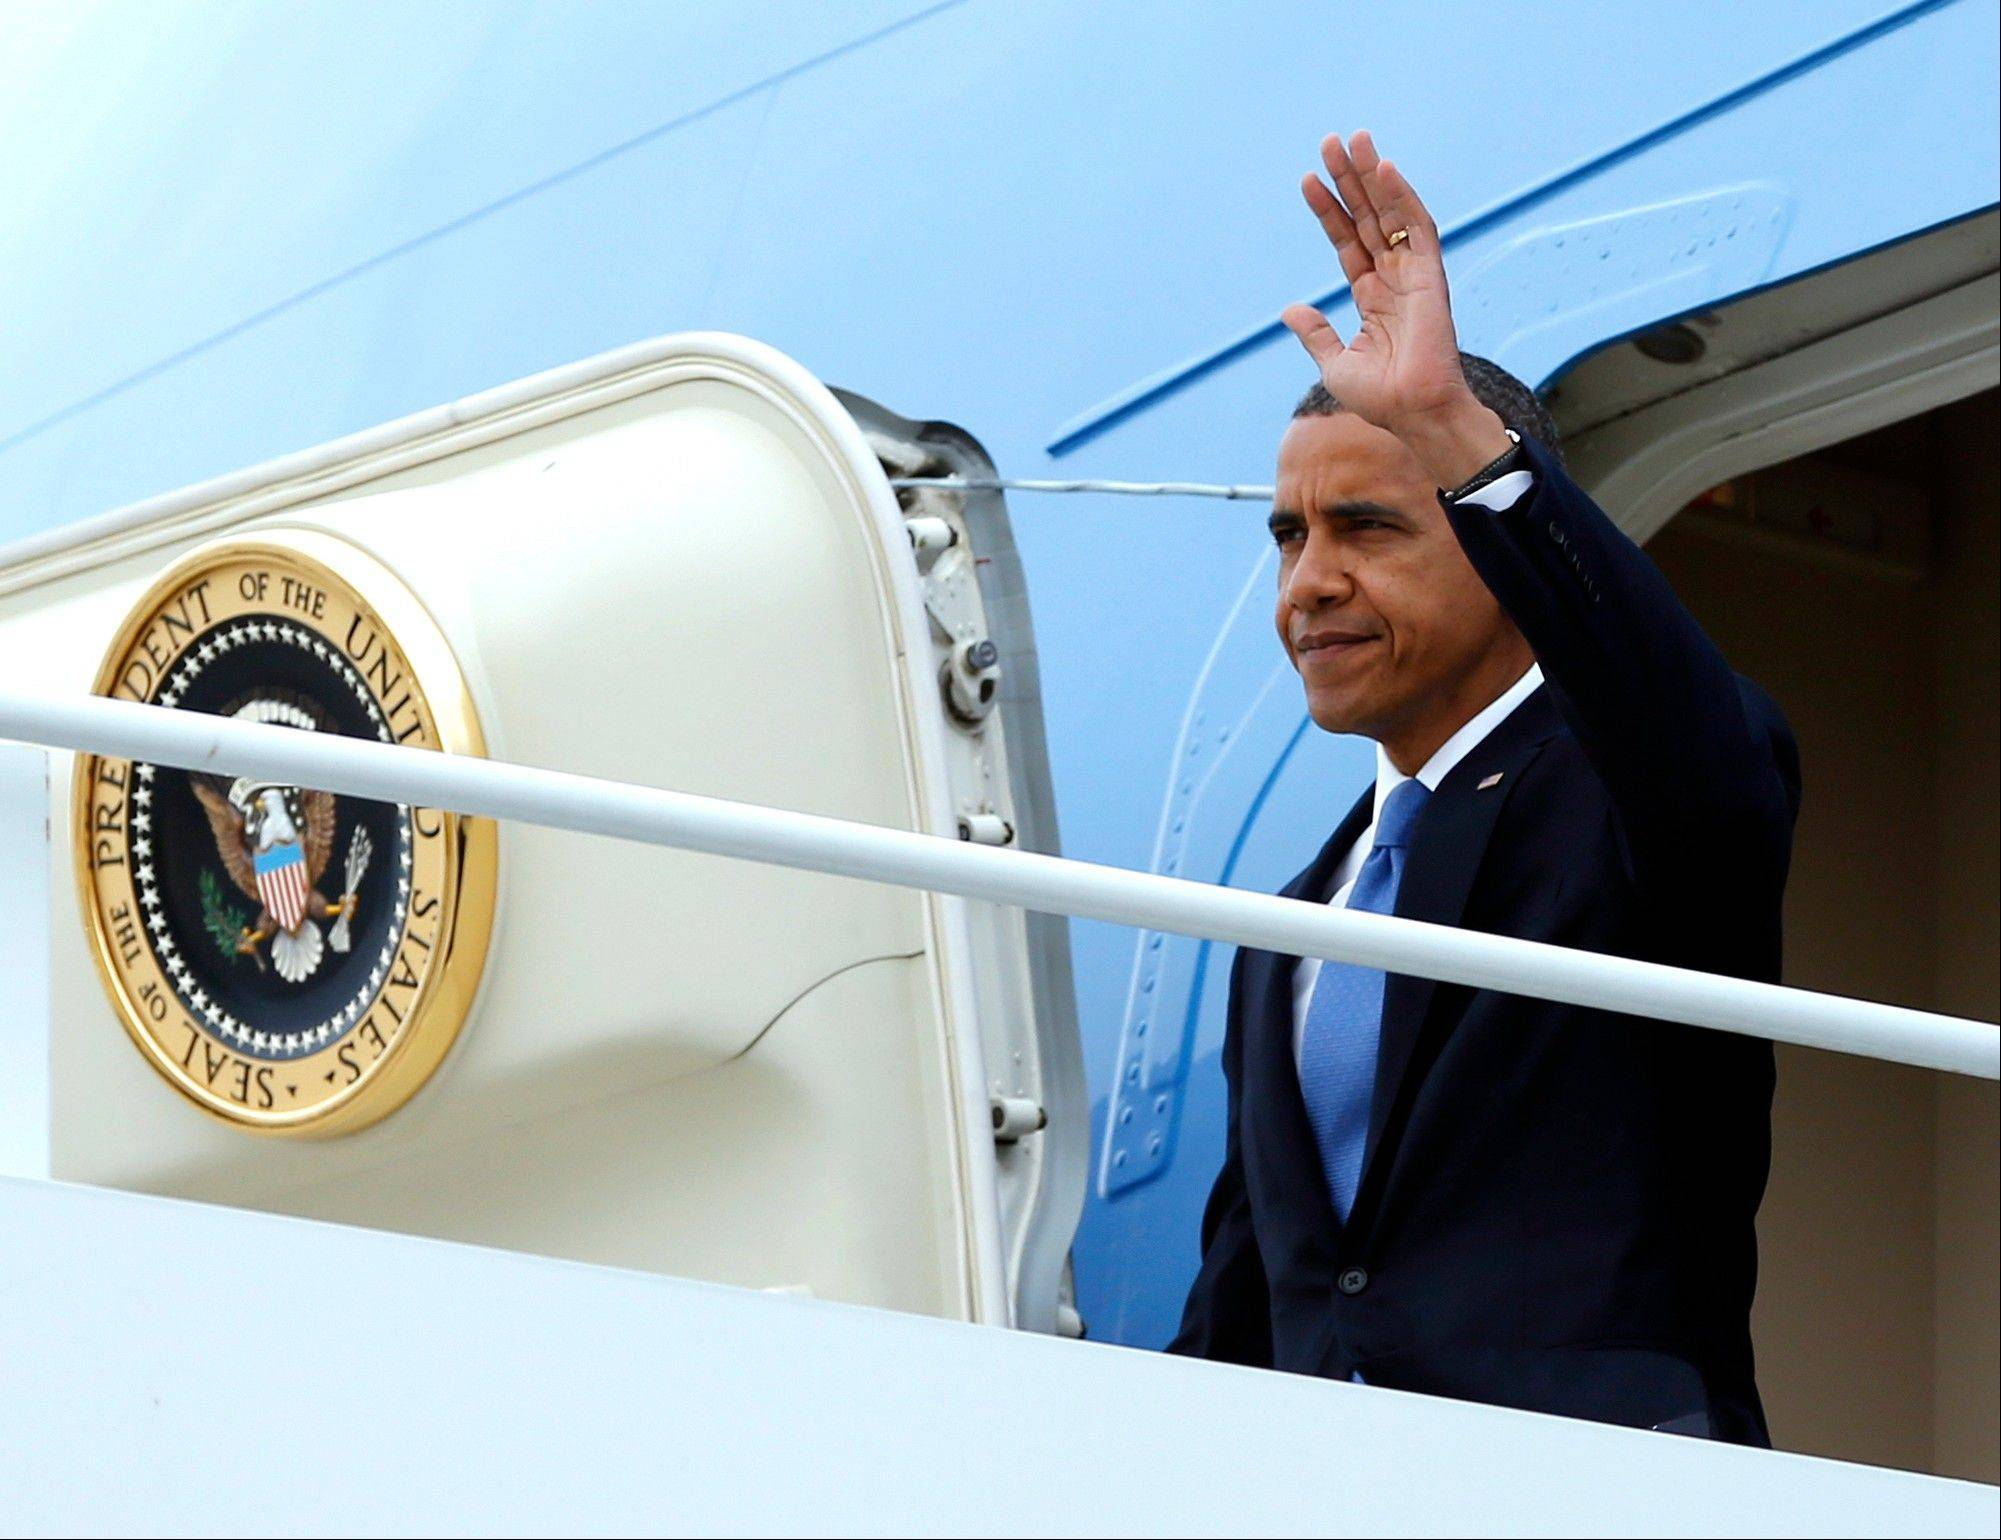 President Barack Obama waves as he arrives on Air Force One at John F. Kennedy International Airport, Tuesday, Sept. 18, 2012, in New York.